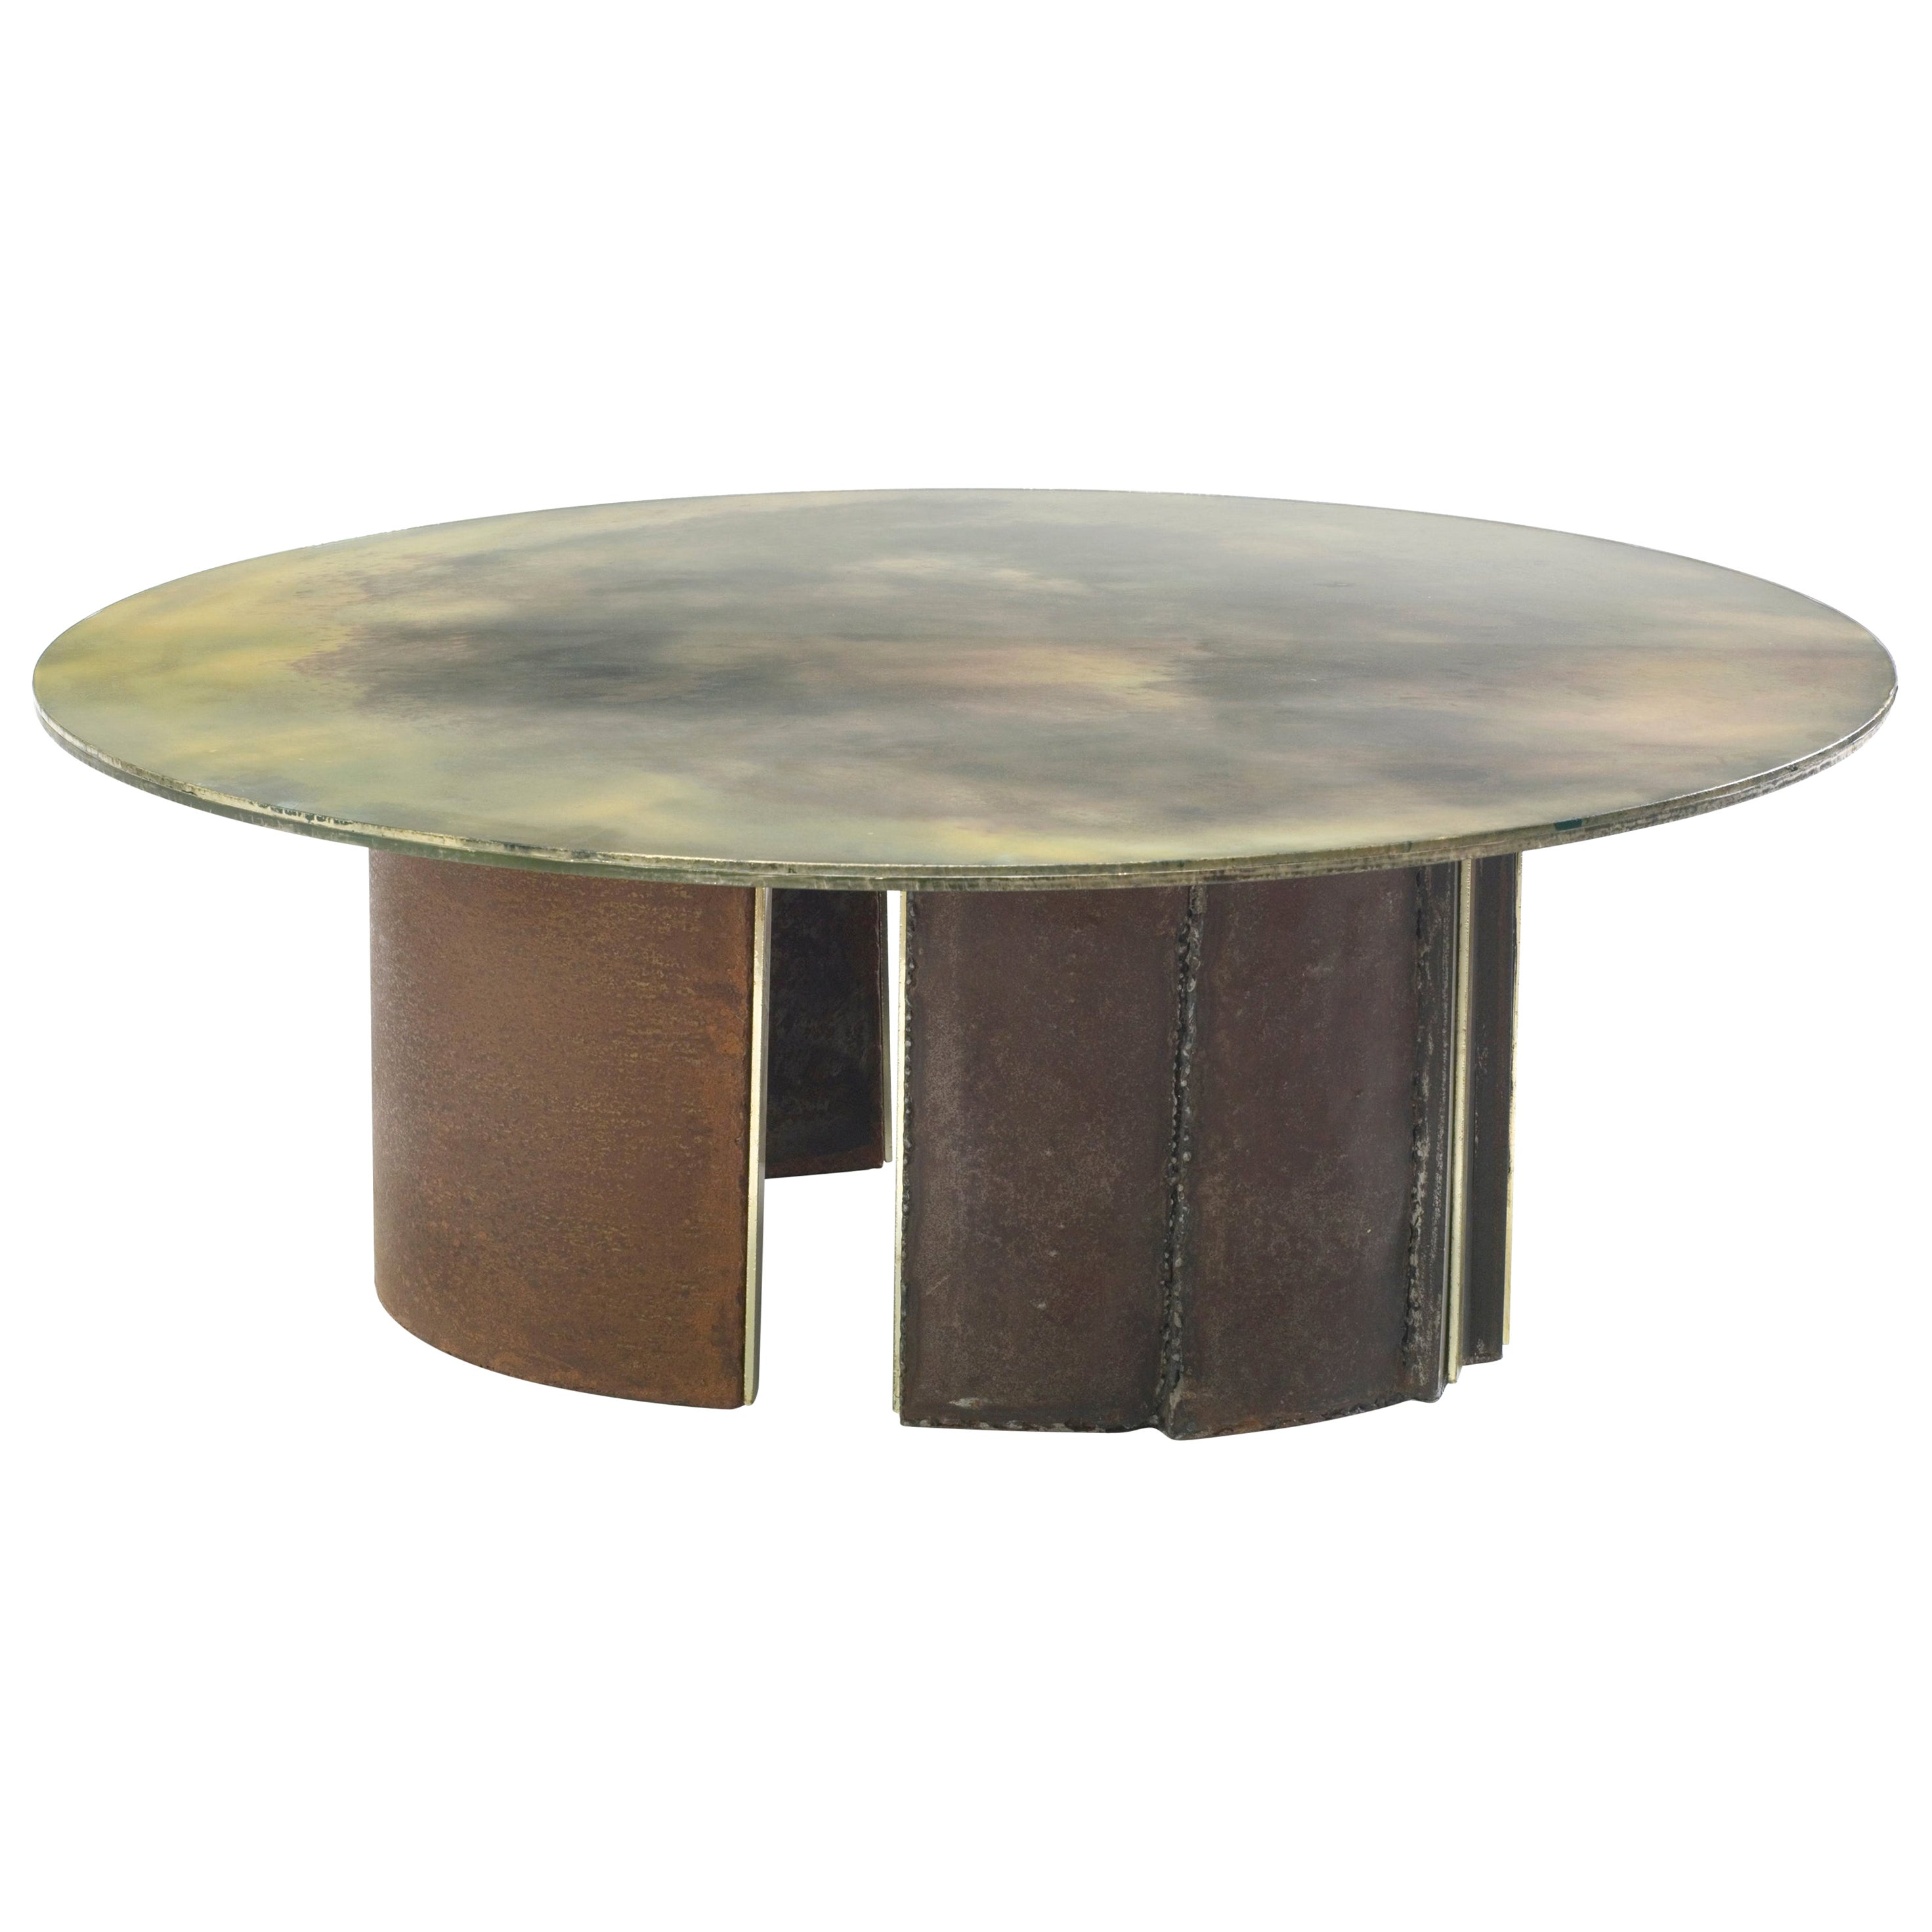 Brutalist Inspired Coffee Table with Hand-Silvered Glass Top and Metal Base